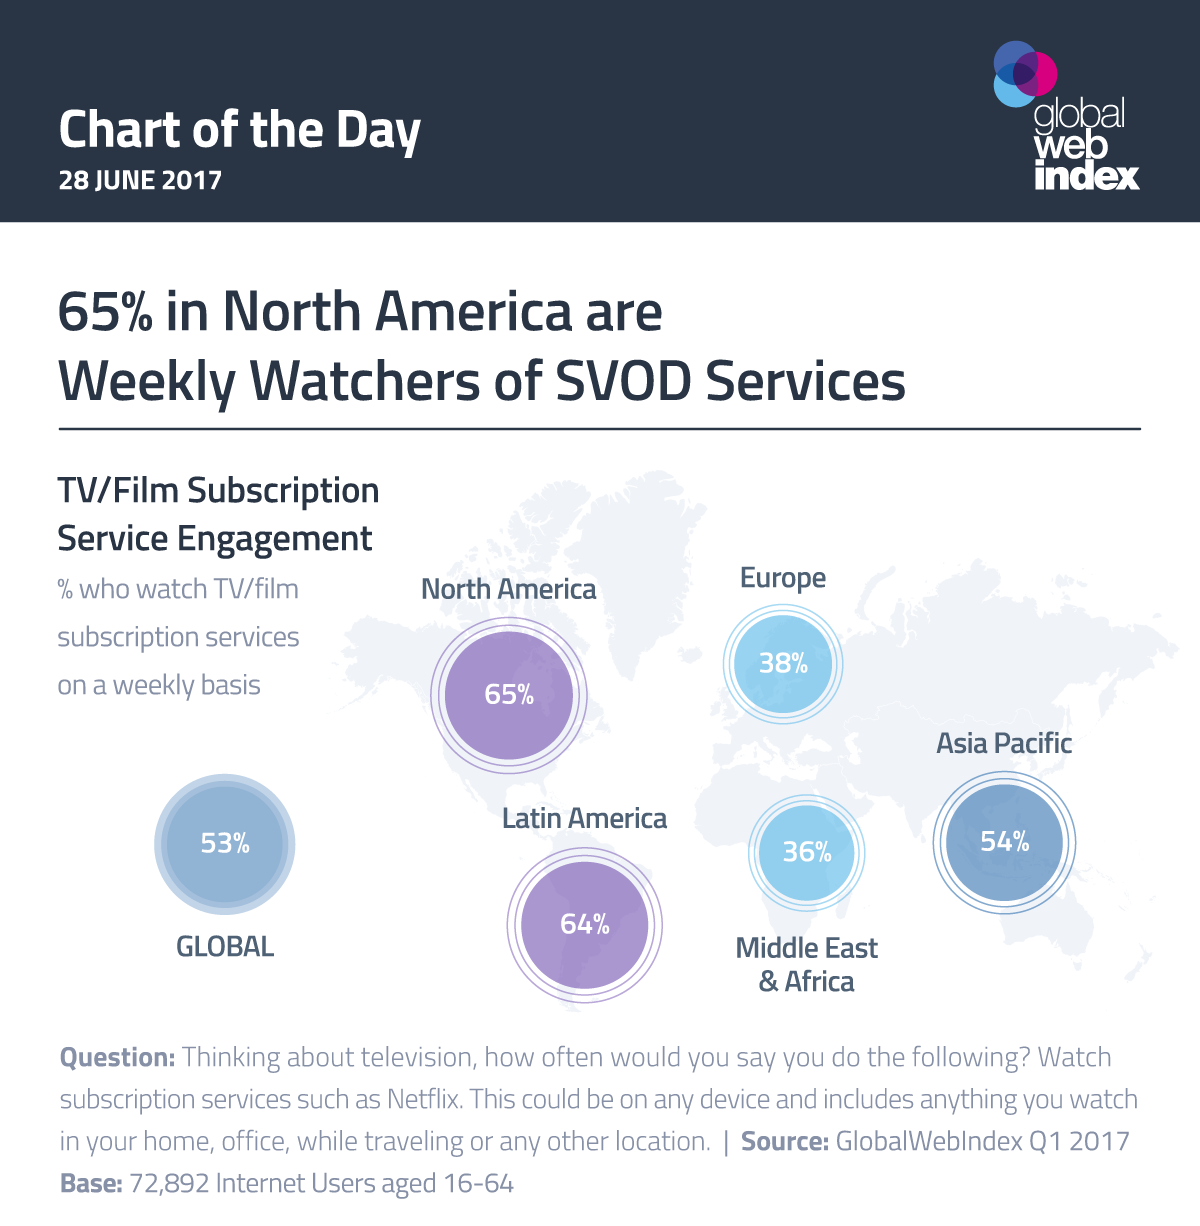 65% in North America are Weekly Watchers of SVOD Services